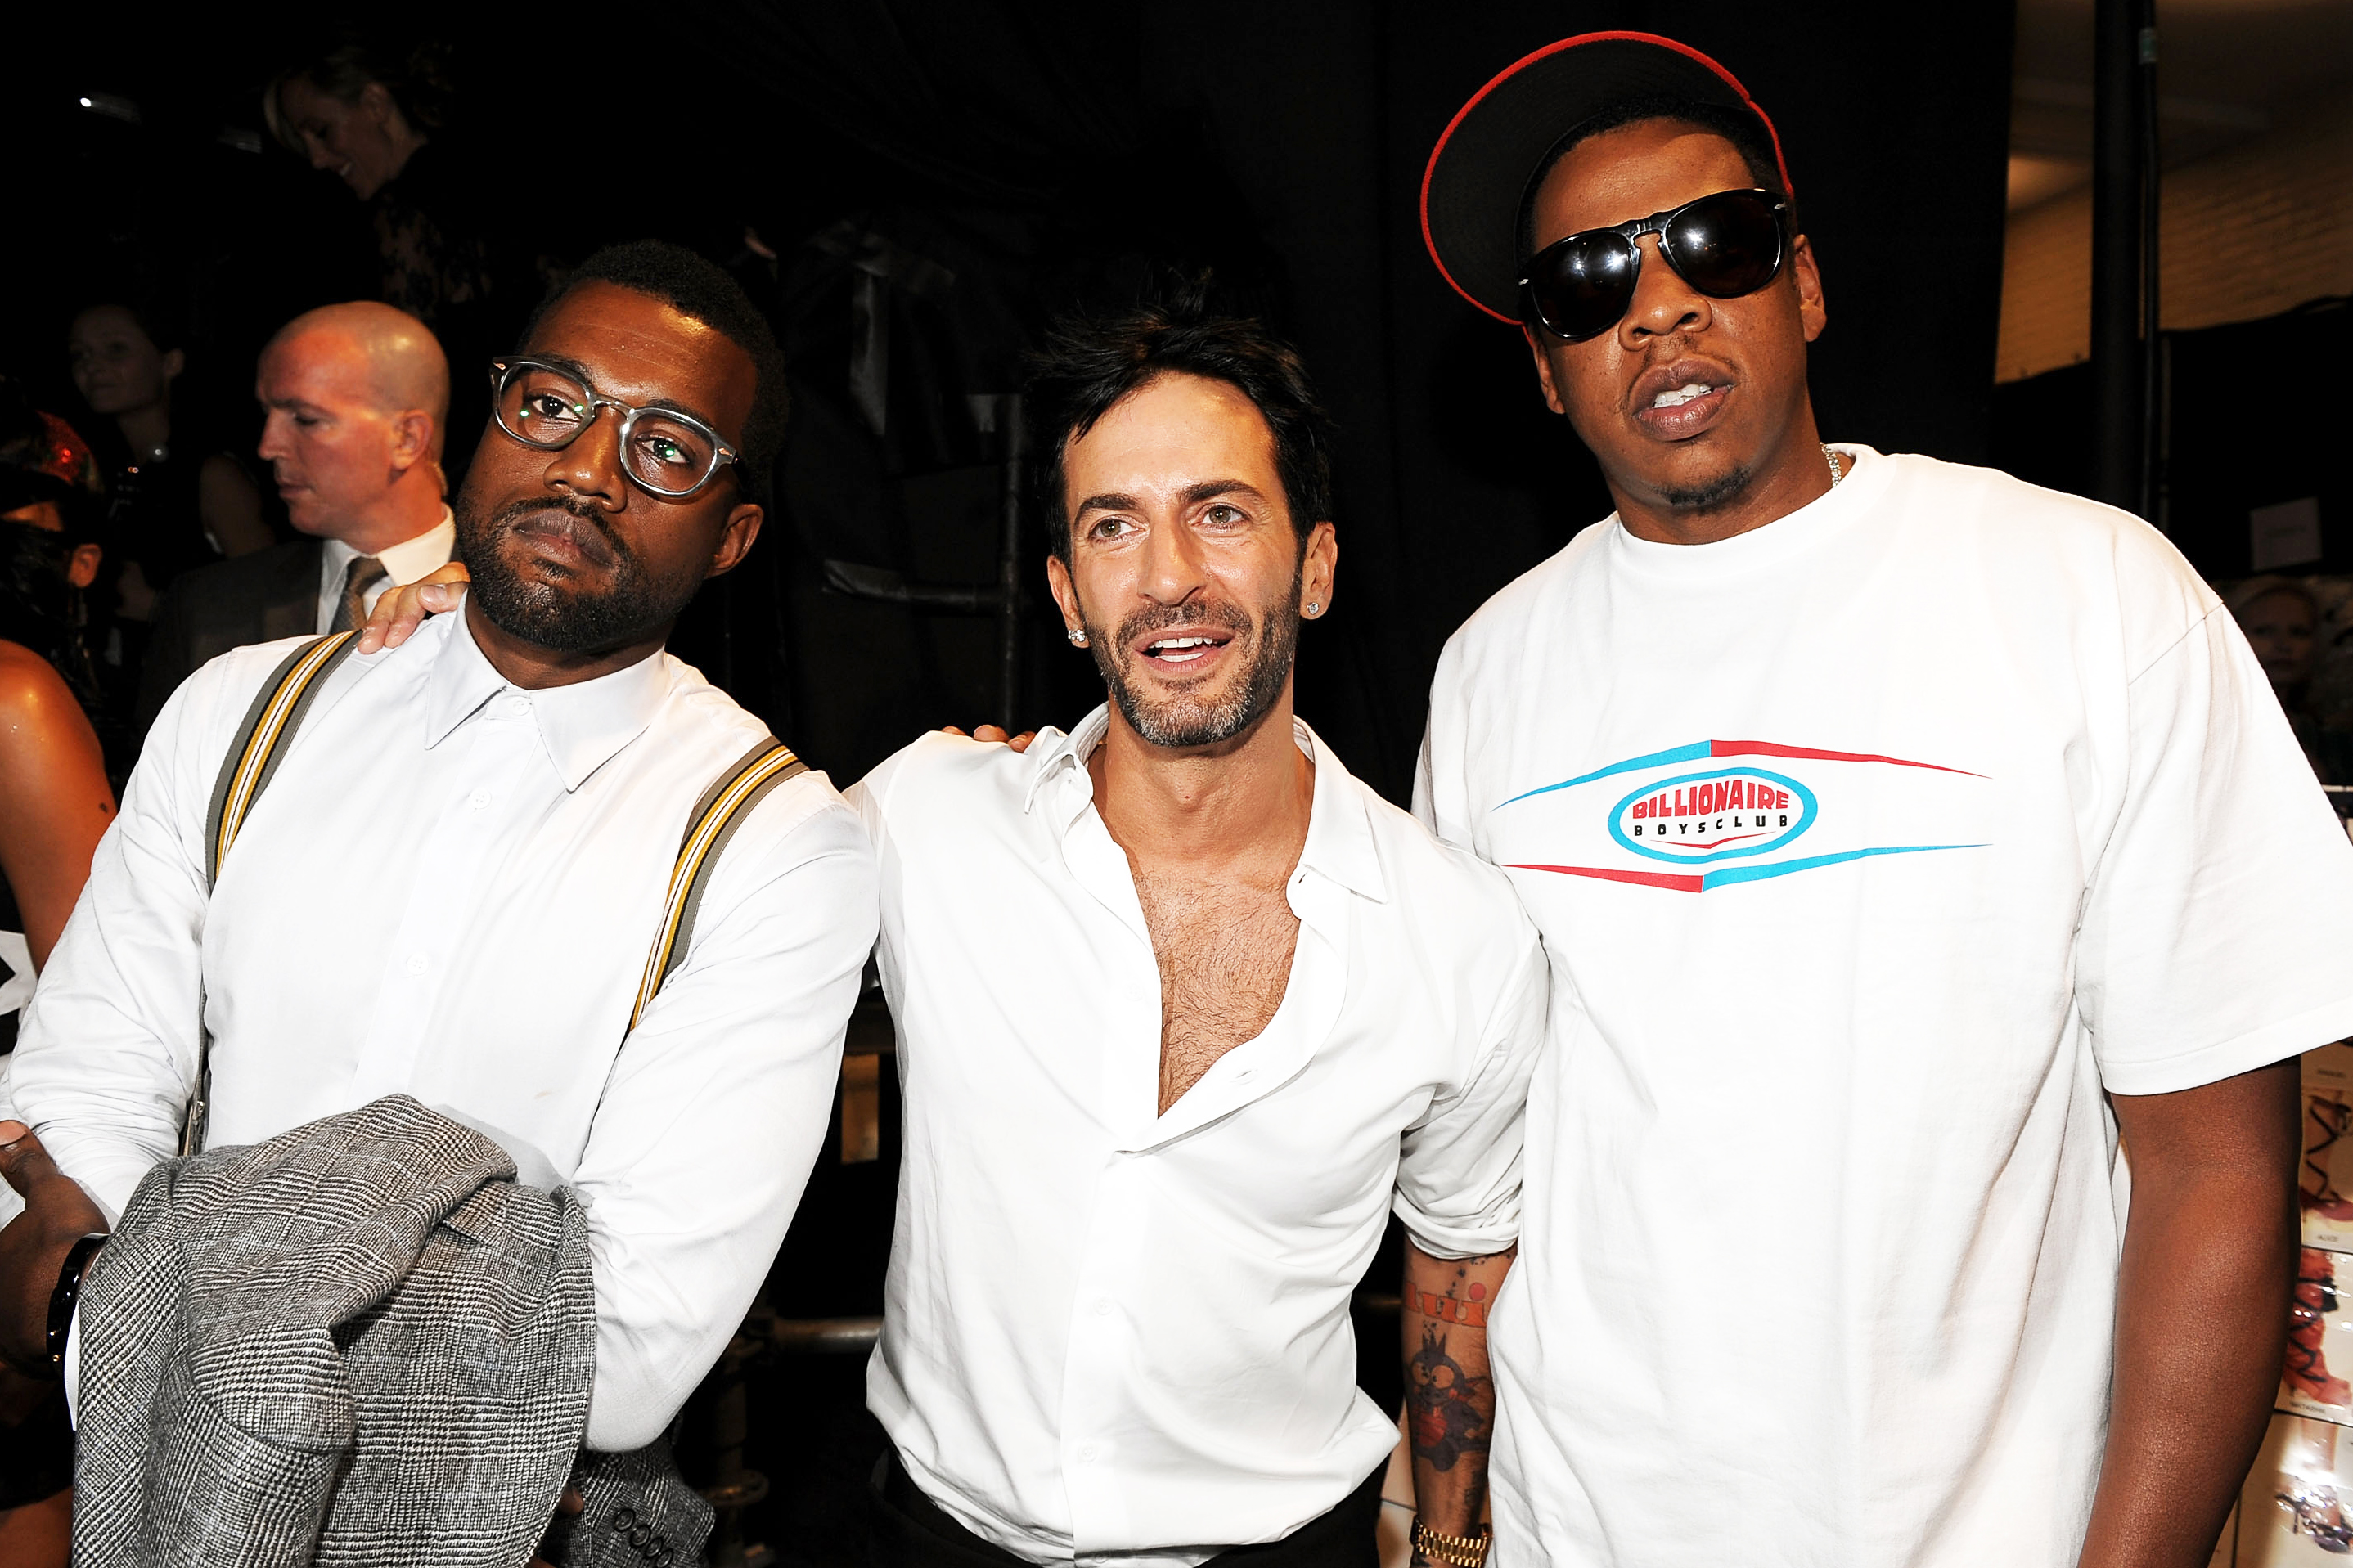 From left: Kanye West, Marc Jacobs and rapper Jay Z at Marc Jacobs Spring '09 Fashion Show at Park Avenue Armory in New York City, on Sept. 8, 2008.